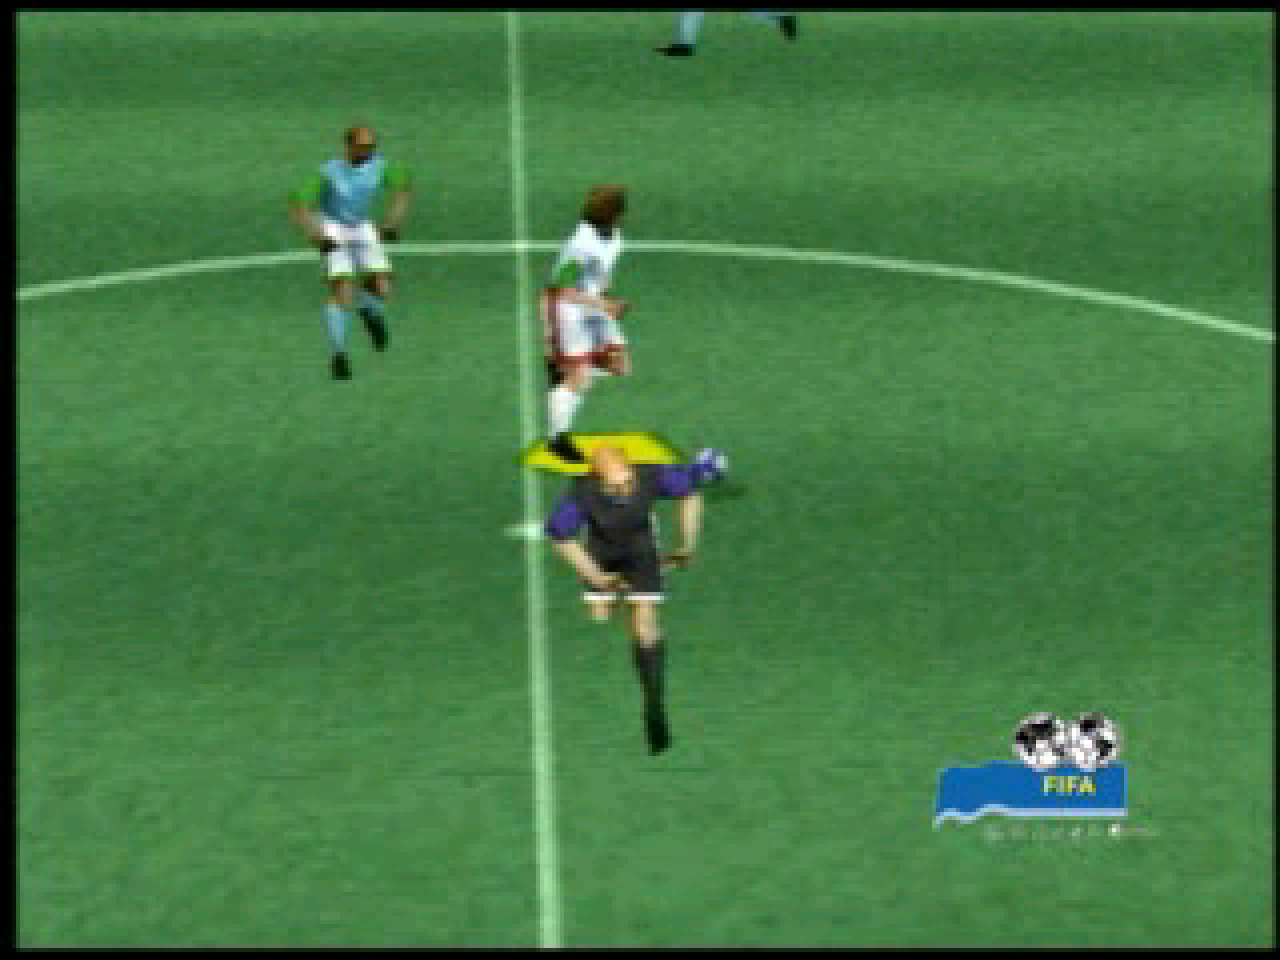 https://s3.eu-west-3.amazonaws.com/games.anthony-dessalles.com/FIFA 99 PS1 2020 - Screenshots/FIFA 99-201123-184637.png